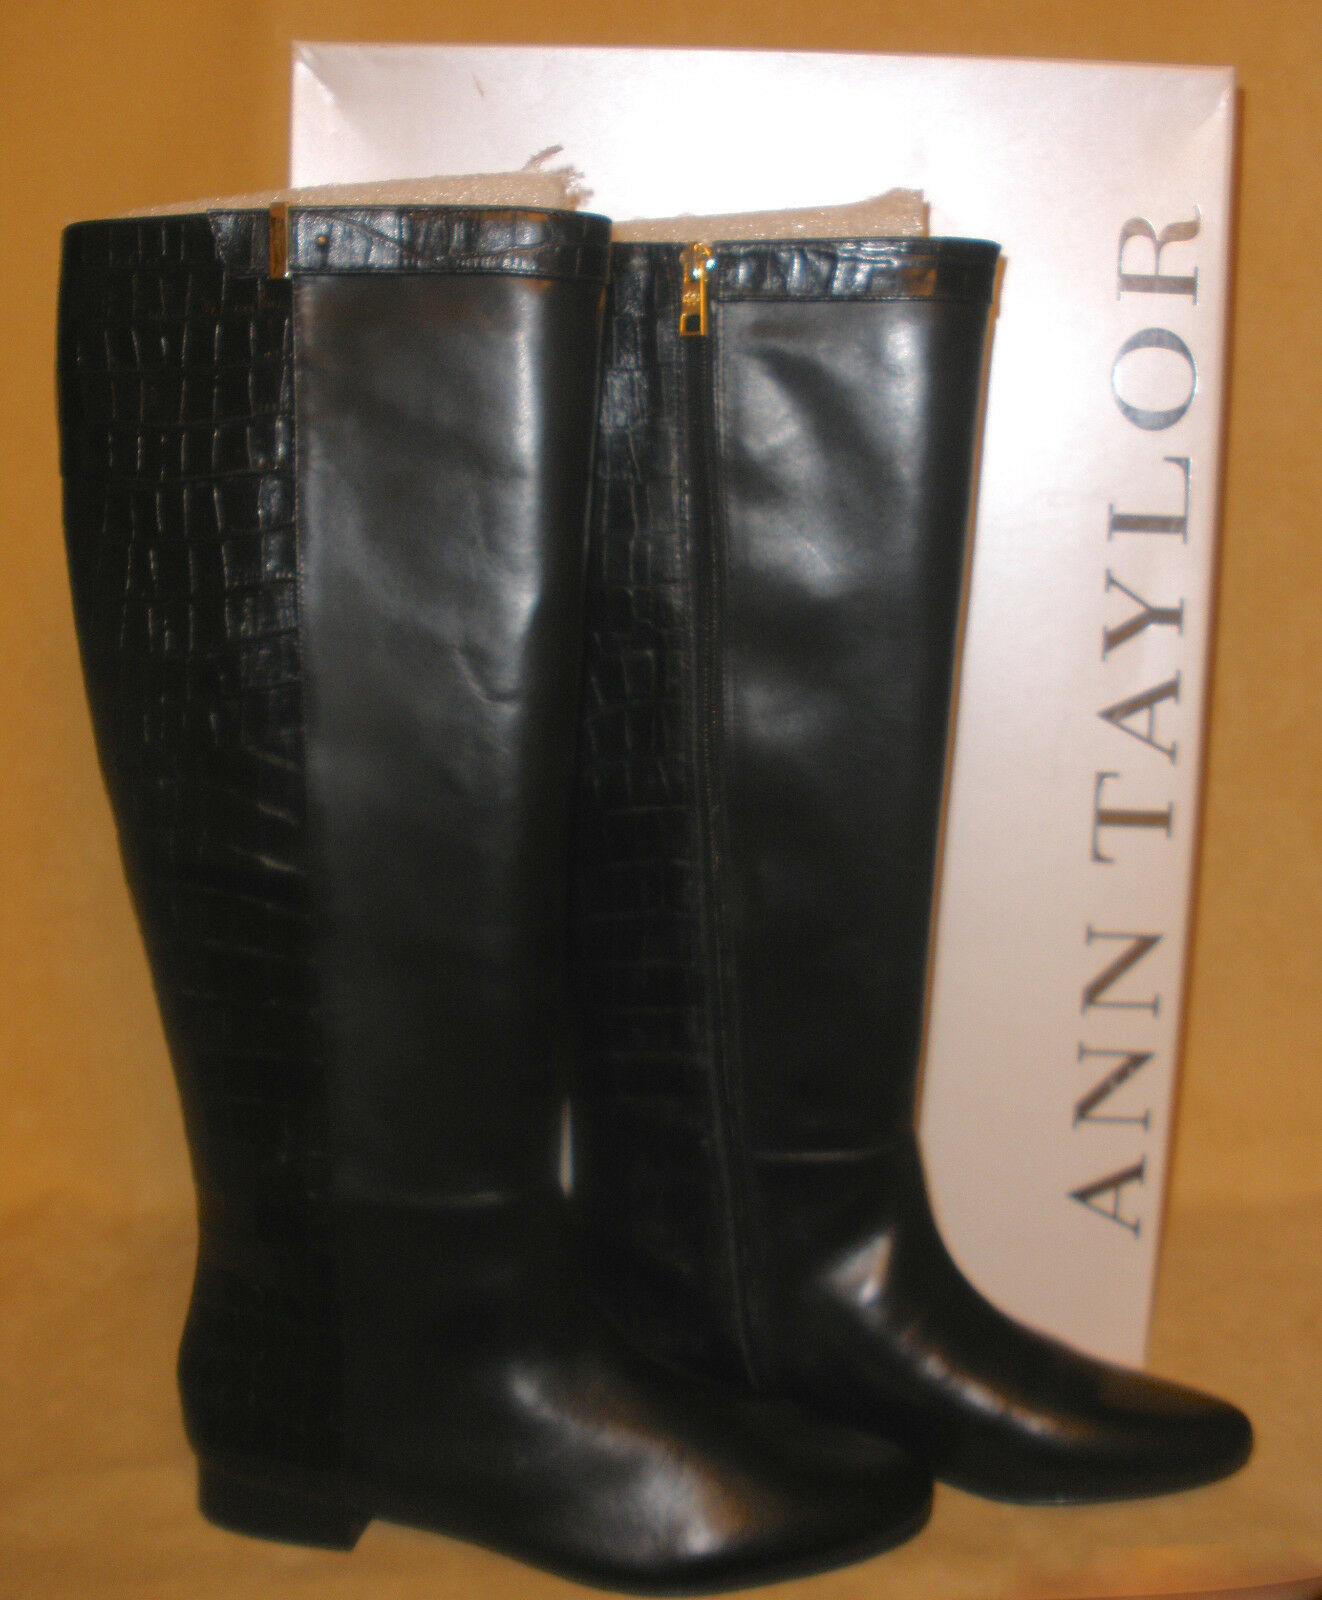 Ann Taylor Black Jorja Riding Boot - New in Box Size 8 (run small like a 7)